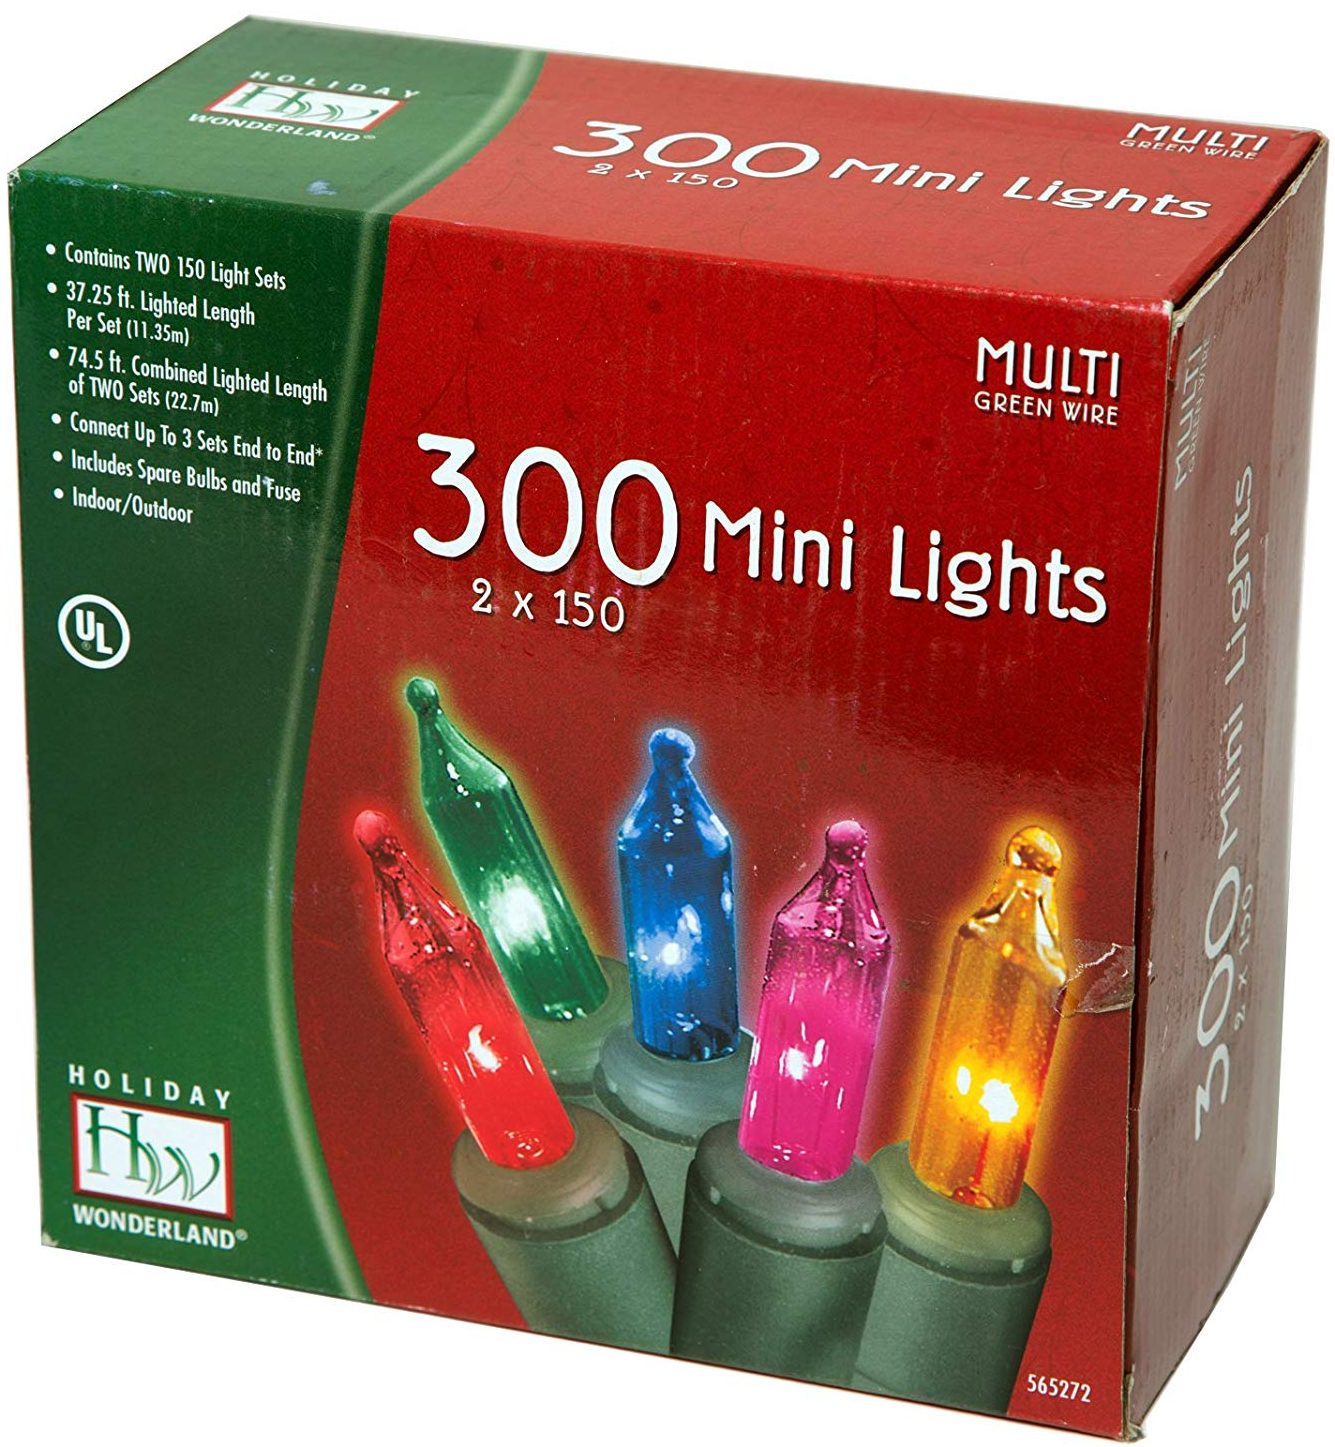 Holiday Wonderland Mini Multi Color Christmas Lights